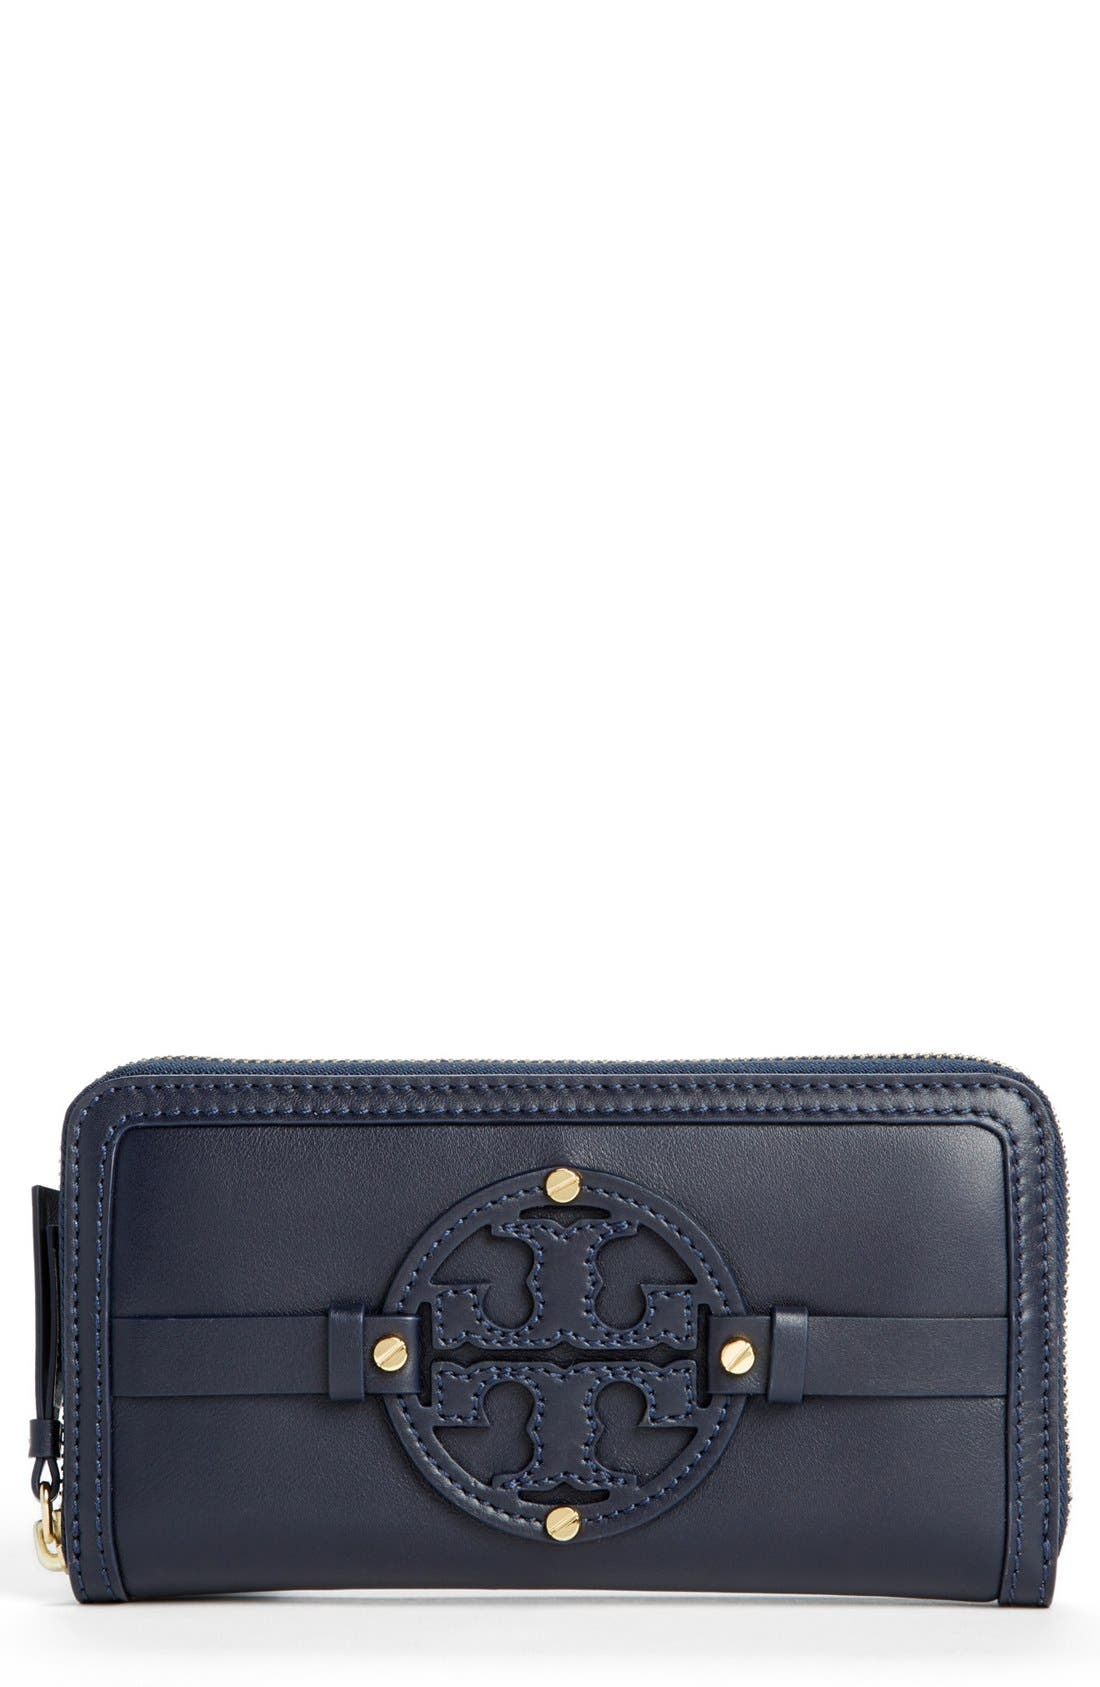 Main Image - Tory Burch 'Holly' Continental Wallet